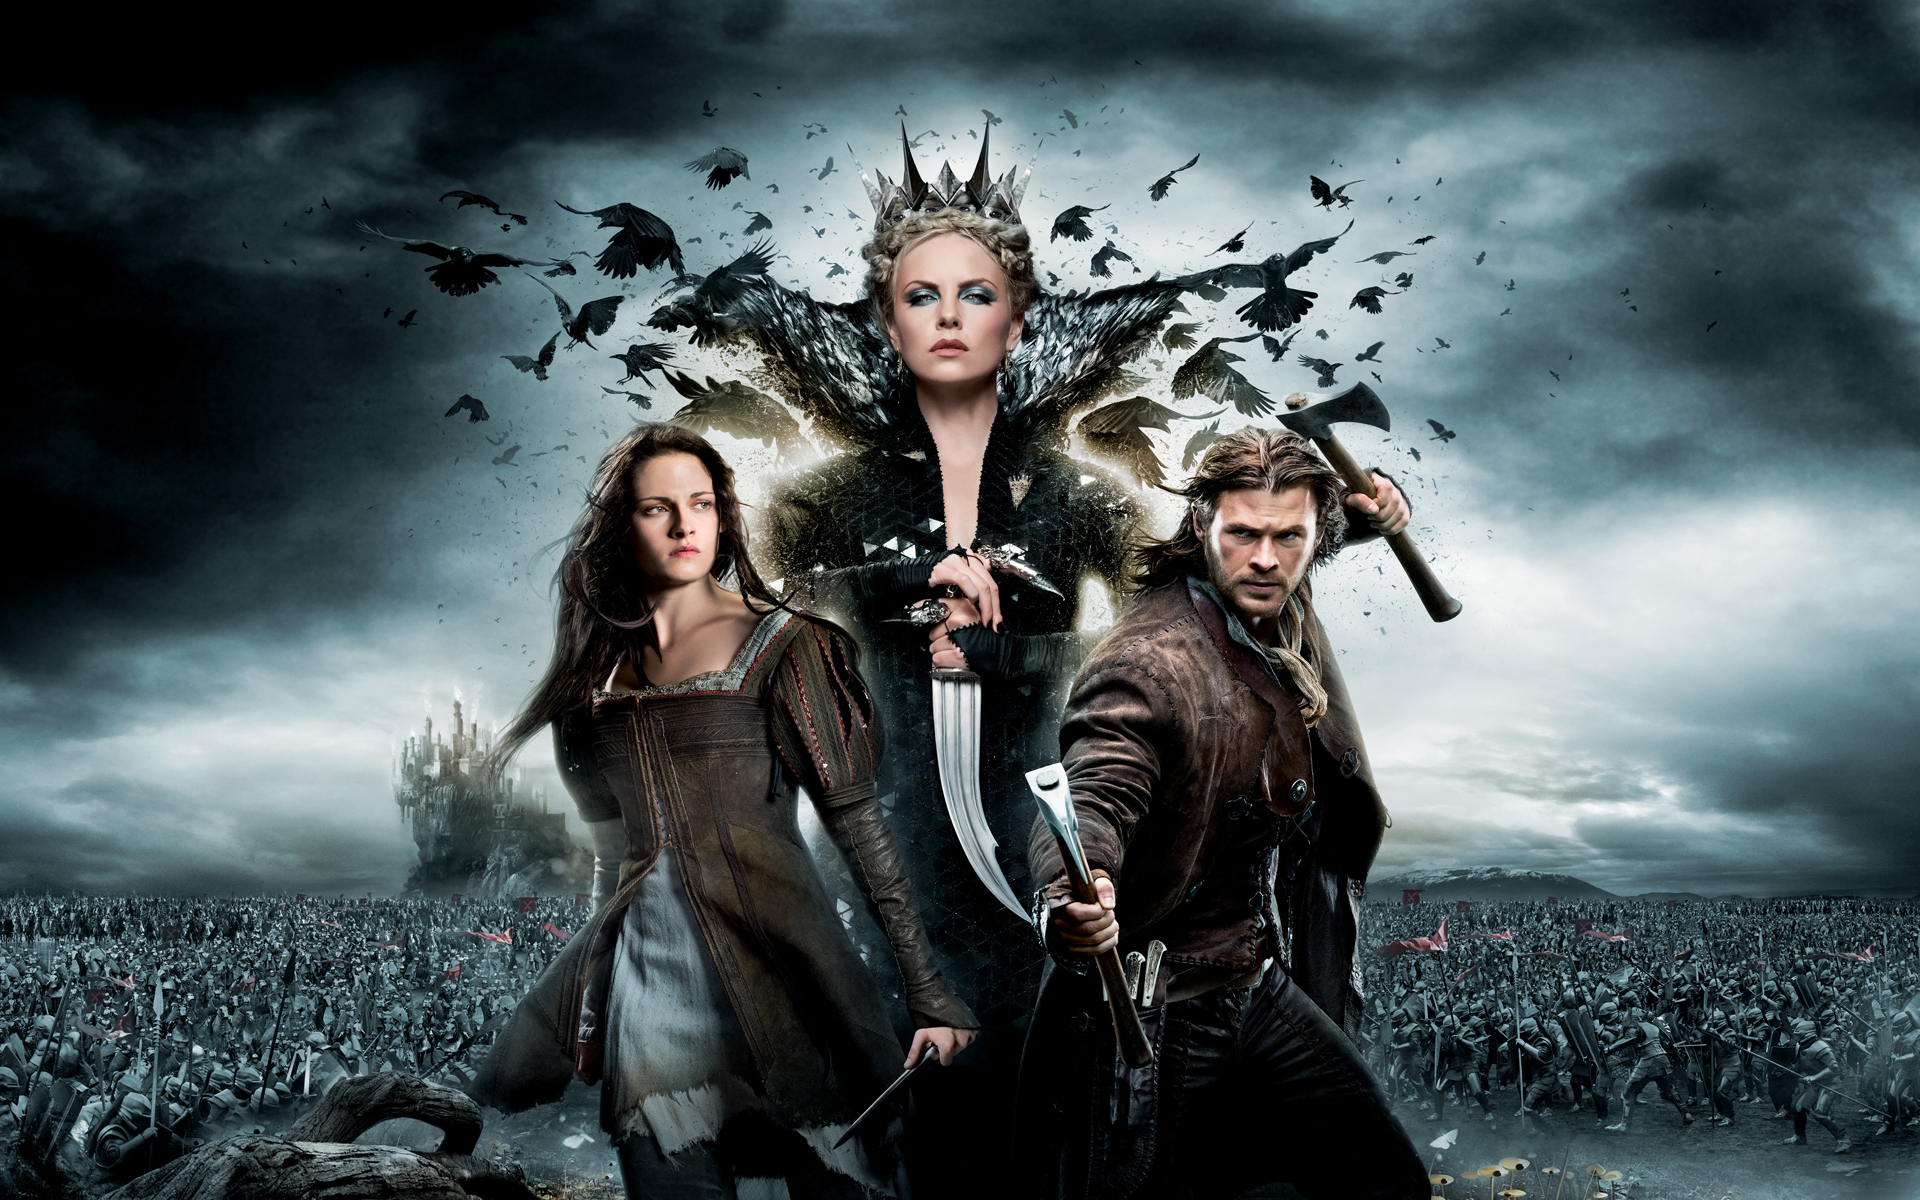 hollywood movies 2012 free download in english